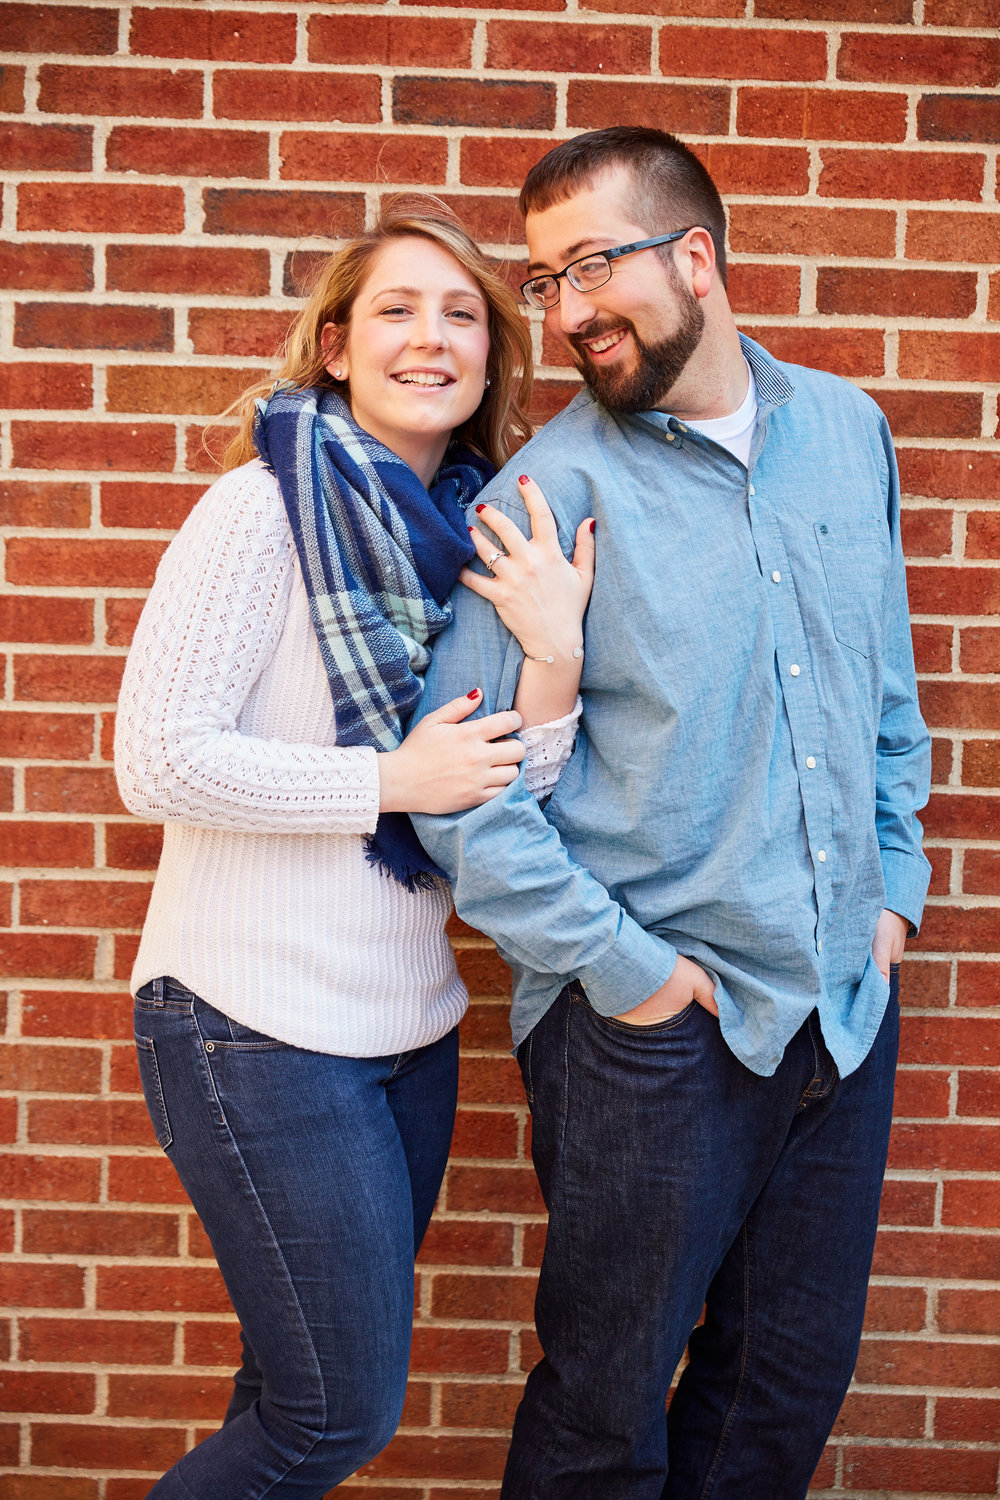 University of Kentucky Lexington Campus Alumni Engagement Photos by St Louis Wedding Photographers Oldani Photography 0 010.jpg